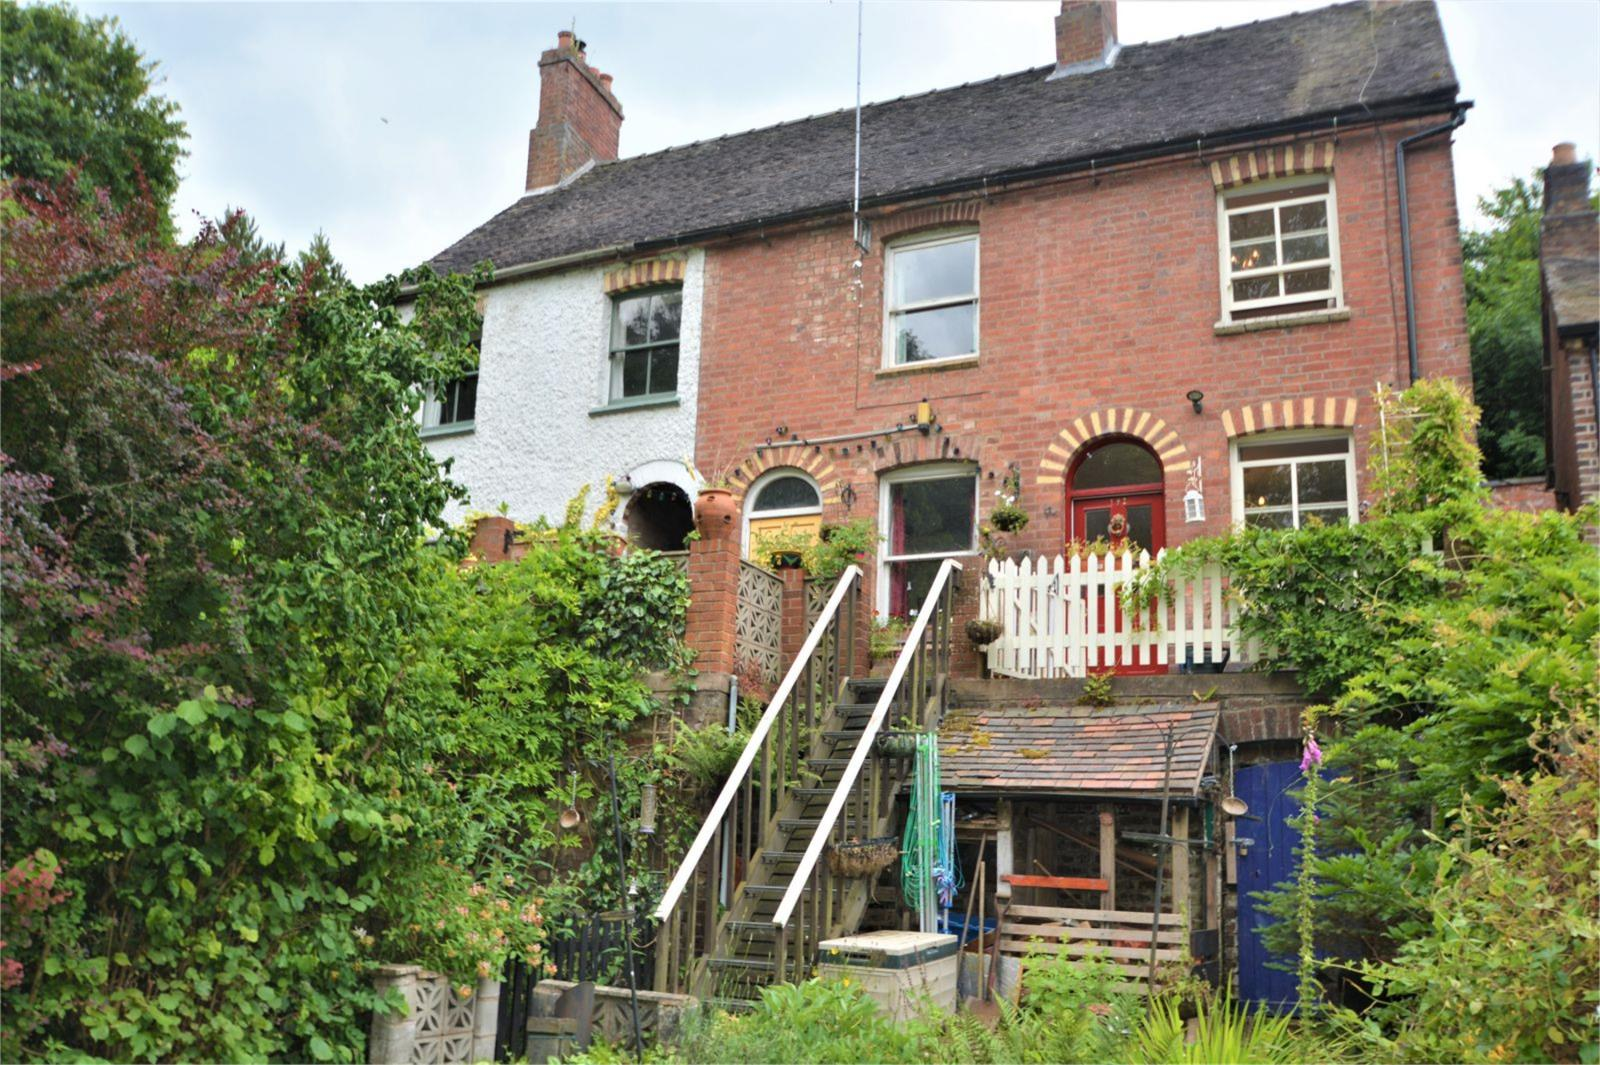 2 Bedrooms Terraced House for sale in 192 Severn Terrace, Salthouse Road, Jackfield, Shropshire, TF8